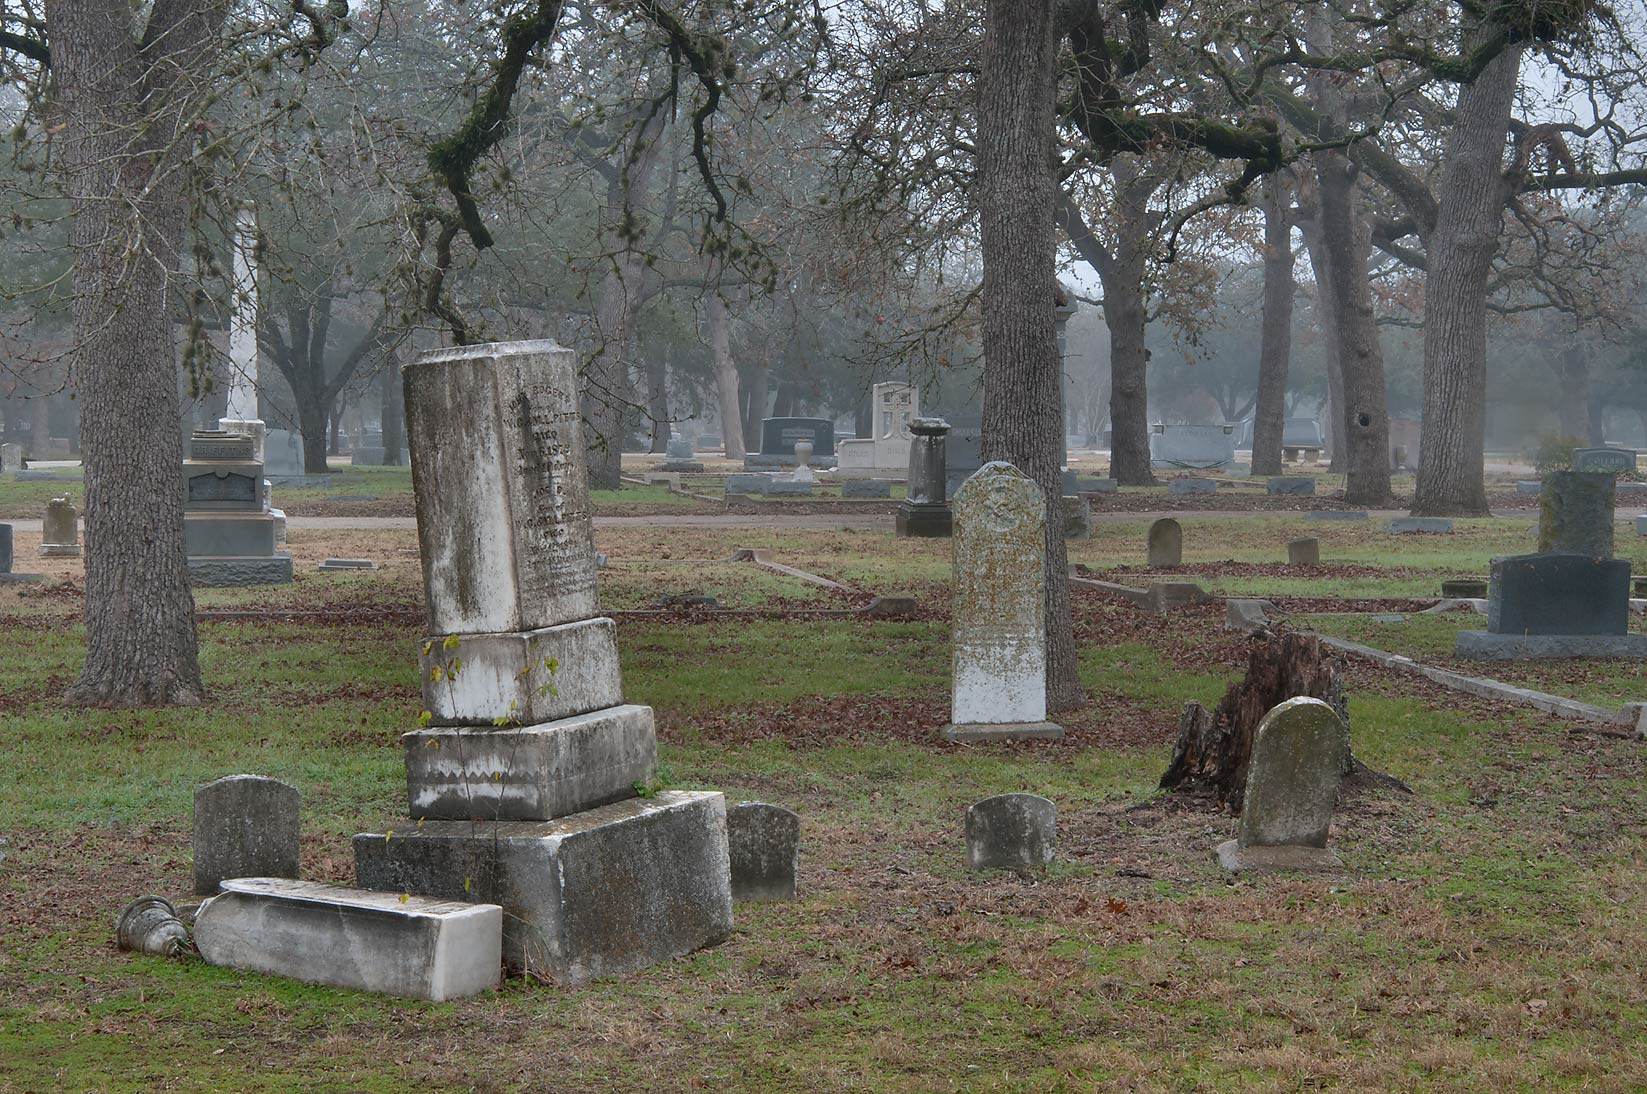 Tombs and oaks of City Cemetery in mist. Bryan, Texas